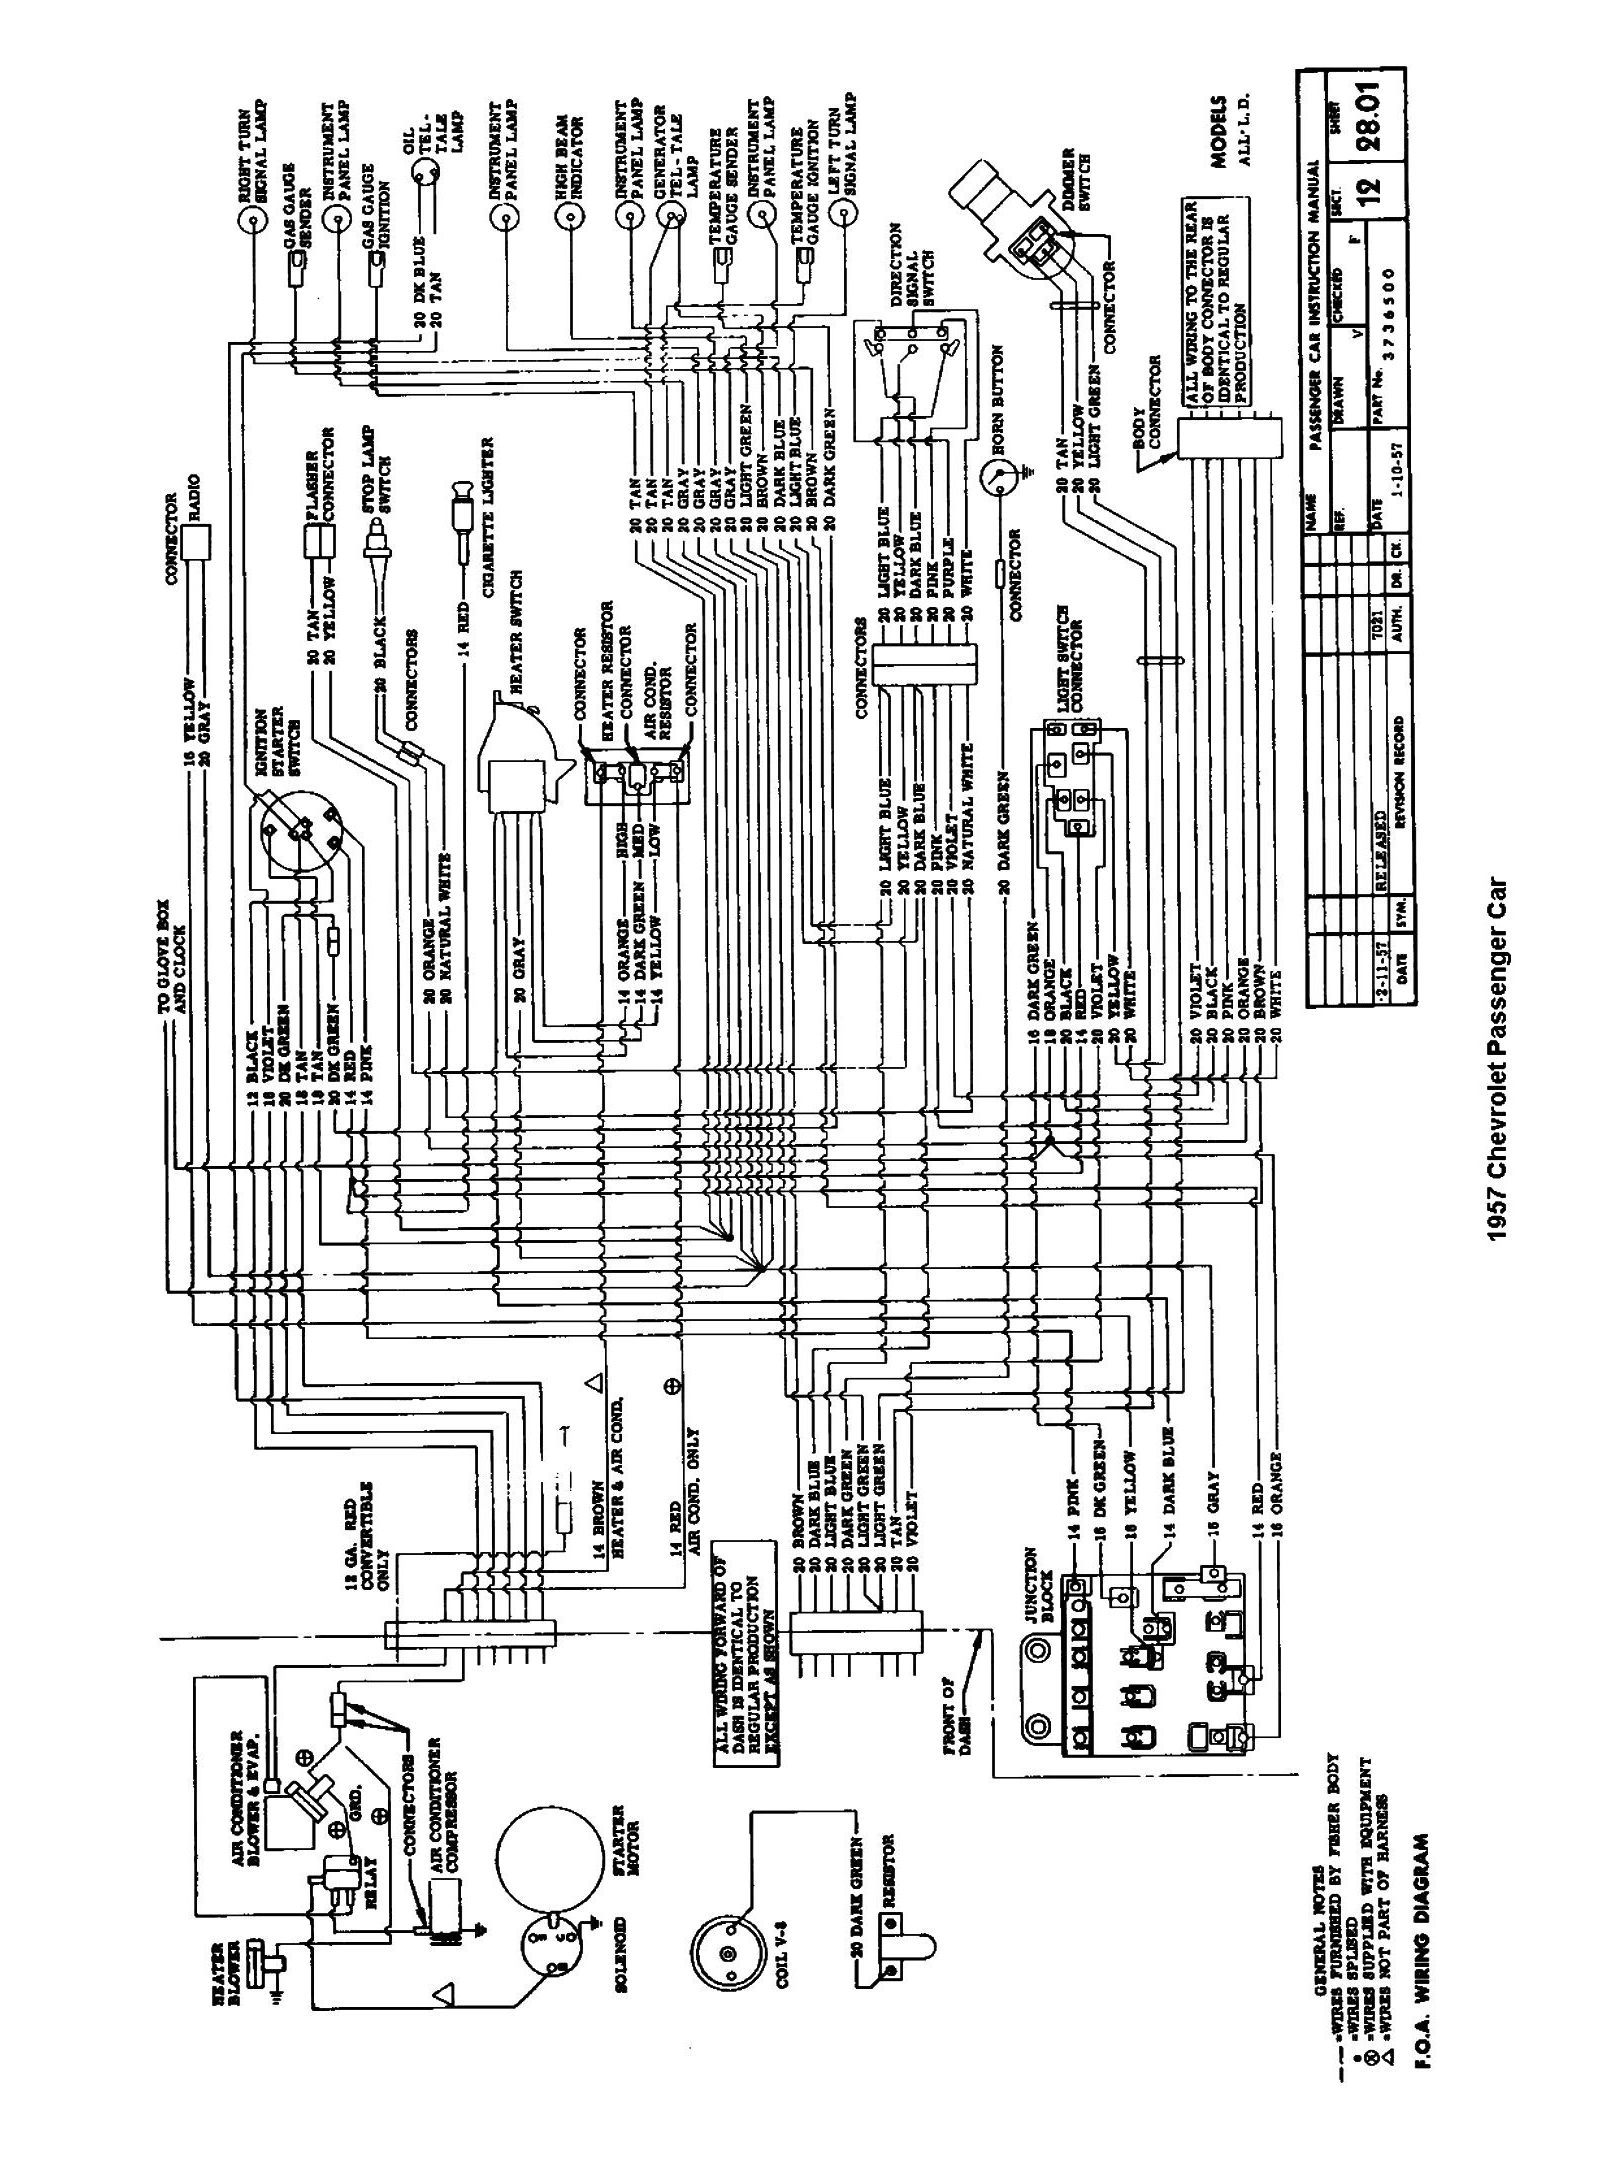 Chevy Wiring Diagrams Truck Fuel Tank Selector Printable Diagram 1957 Passenger Car 2